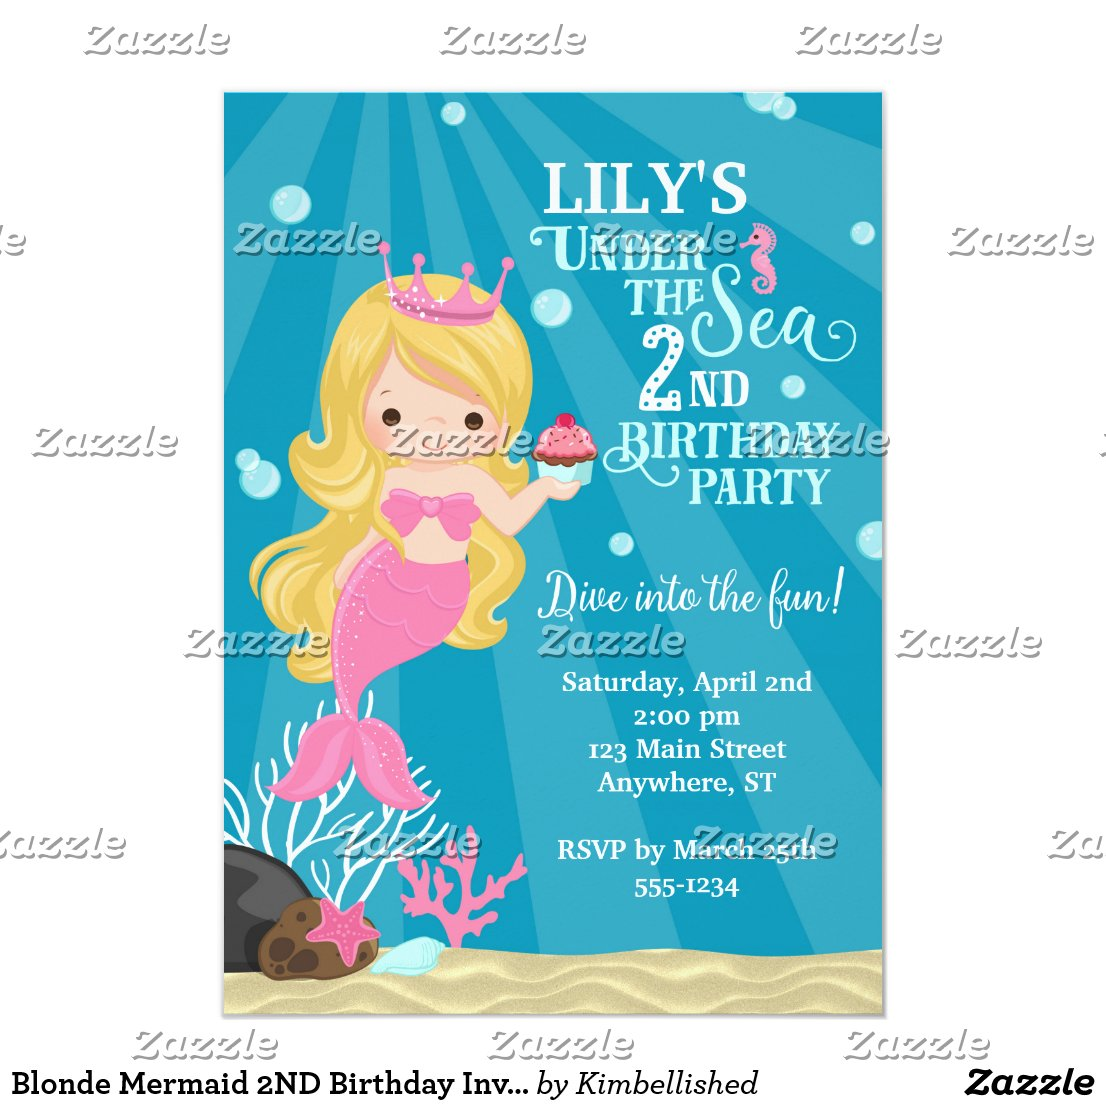 Blonde Mermaid 2ND Birthday Invitation